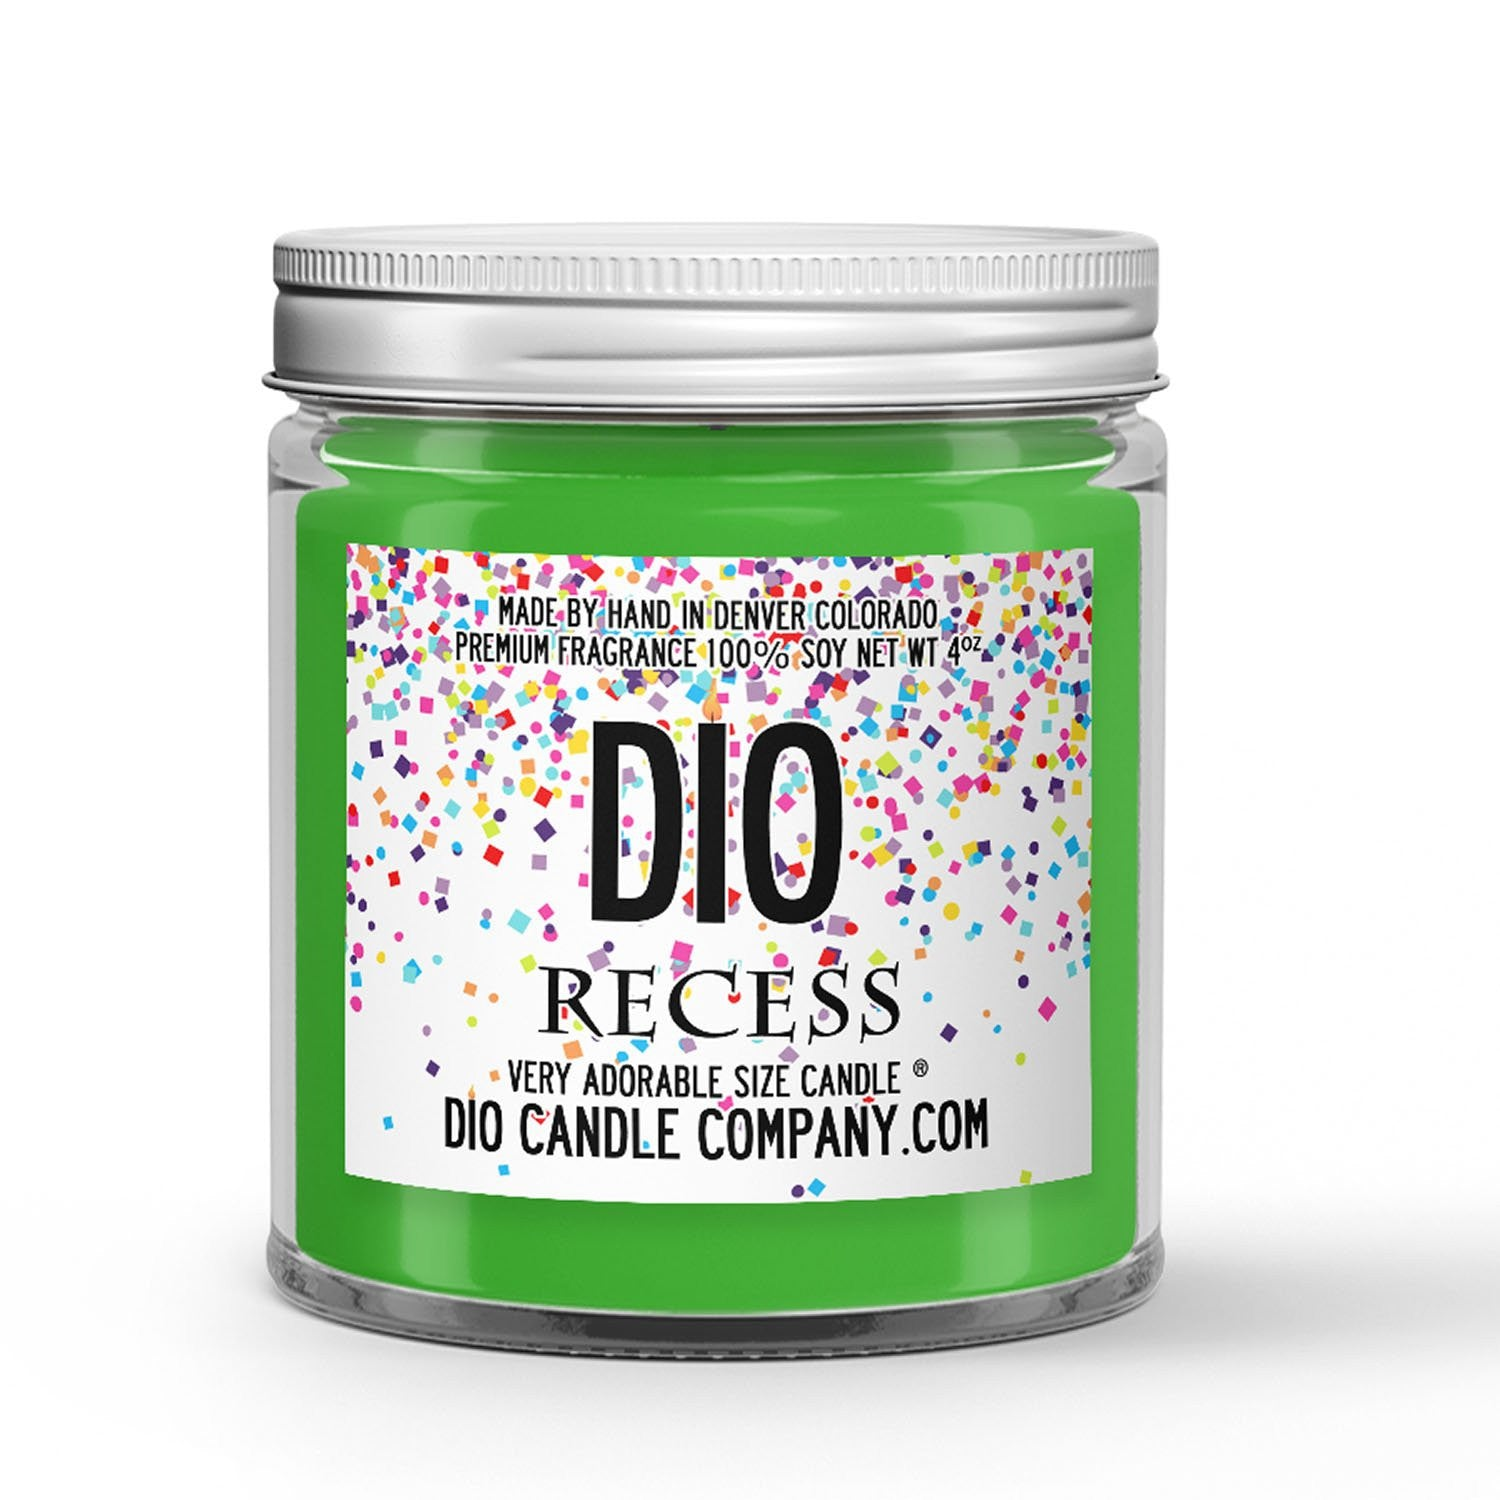 Recess Candle Fresh Air - Grass - Clementine Scented - Dio Candle Company